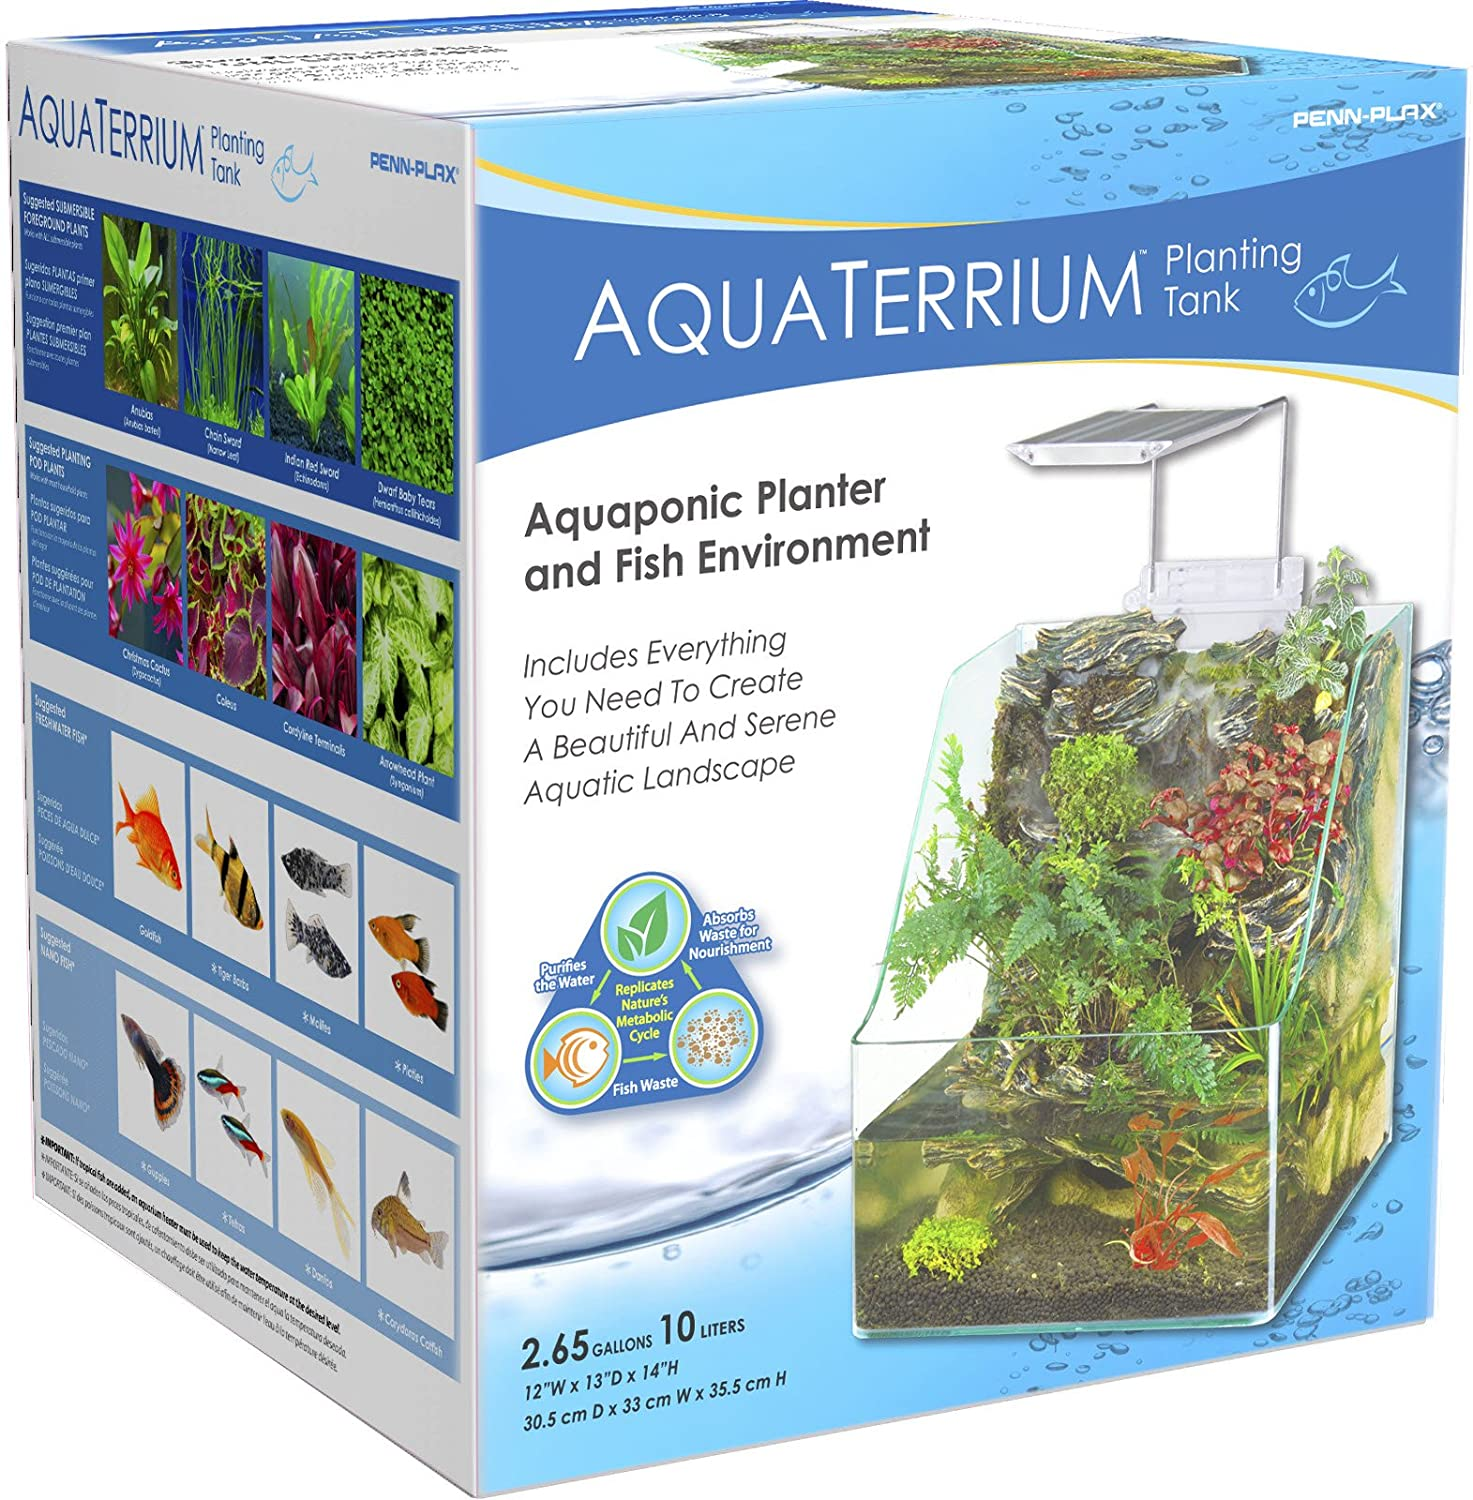 Penn Plax Presents The Aquaterrium 8 Gallon Planting 020316 Swarovski Elements Anting Tank Grow Plants And Fish In One Environment Large Pet Supplies